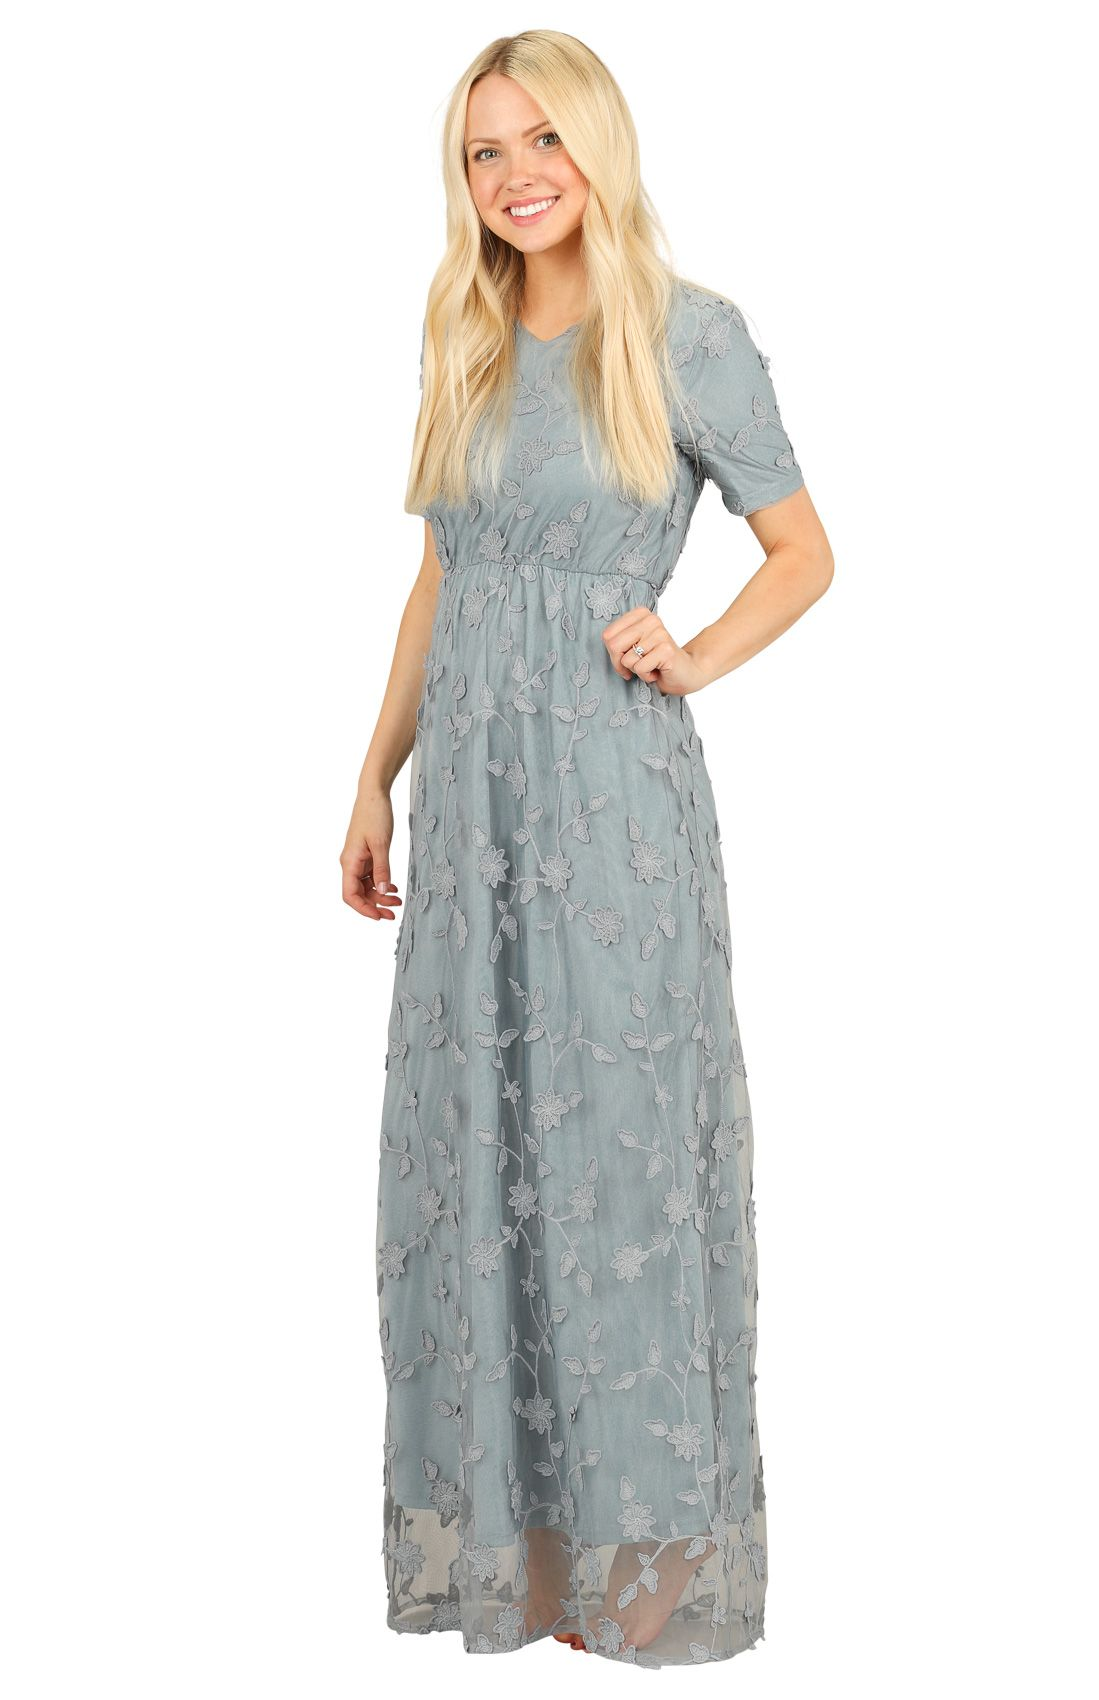 d187af5fc4982 Kinsley Modest Maxi Dress in Dusty Blue w/Textured Floral Overlay  *RESTOCKED*